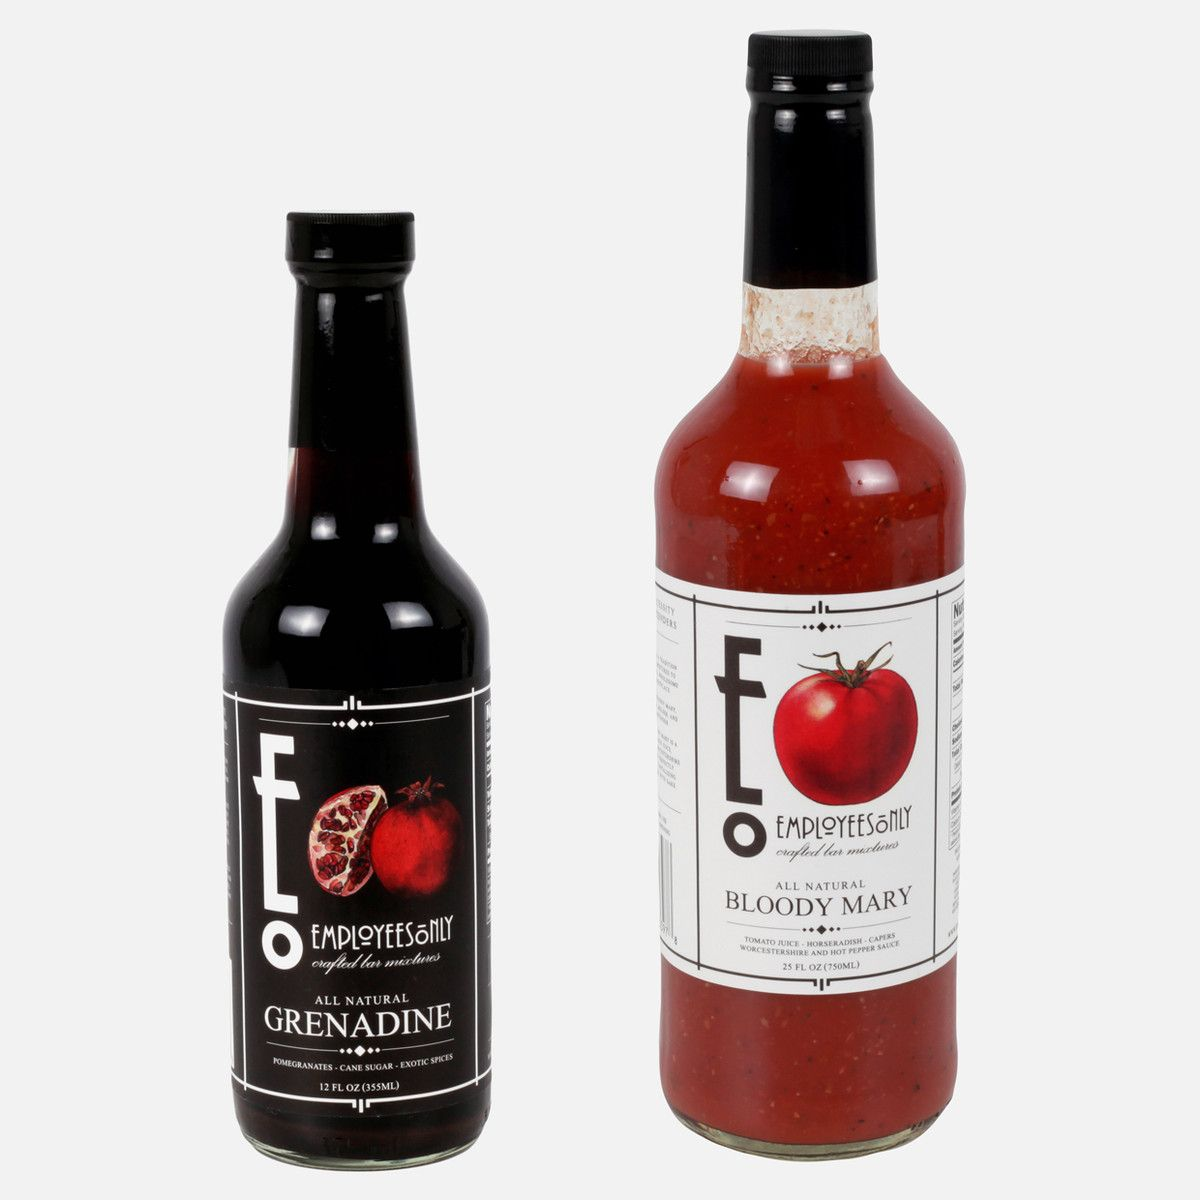 Employees Only Double Punch By Employees Only Bloodymary Http Fab Com Iochyc Grenadine Wine Bottle Hot Sauce Bottles